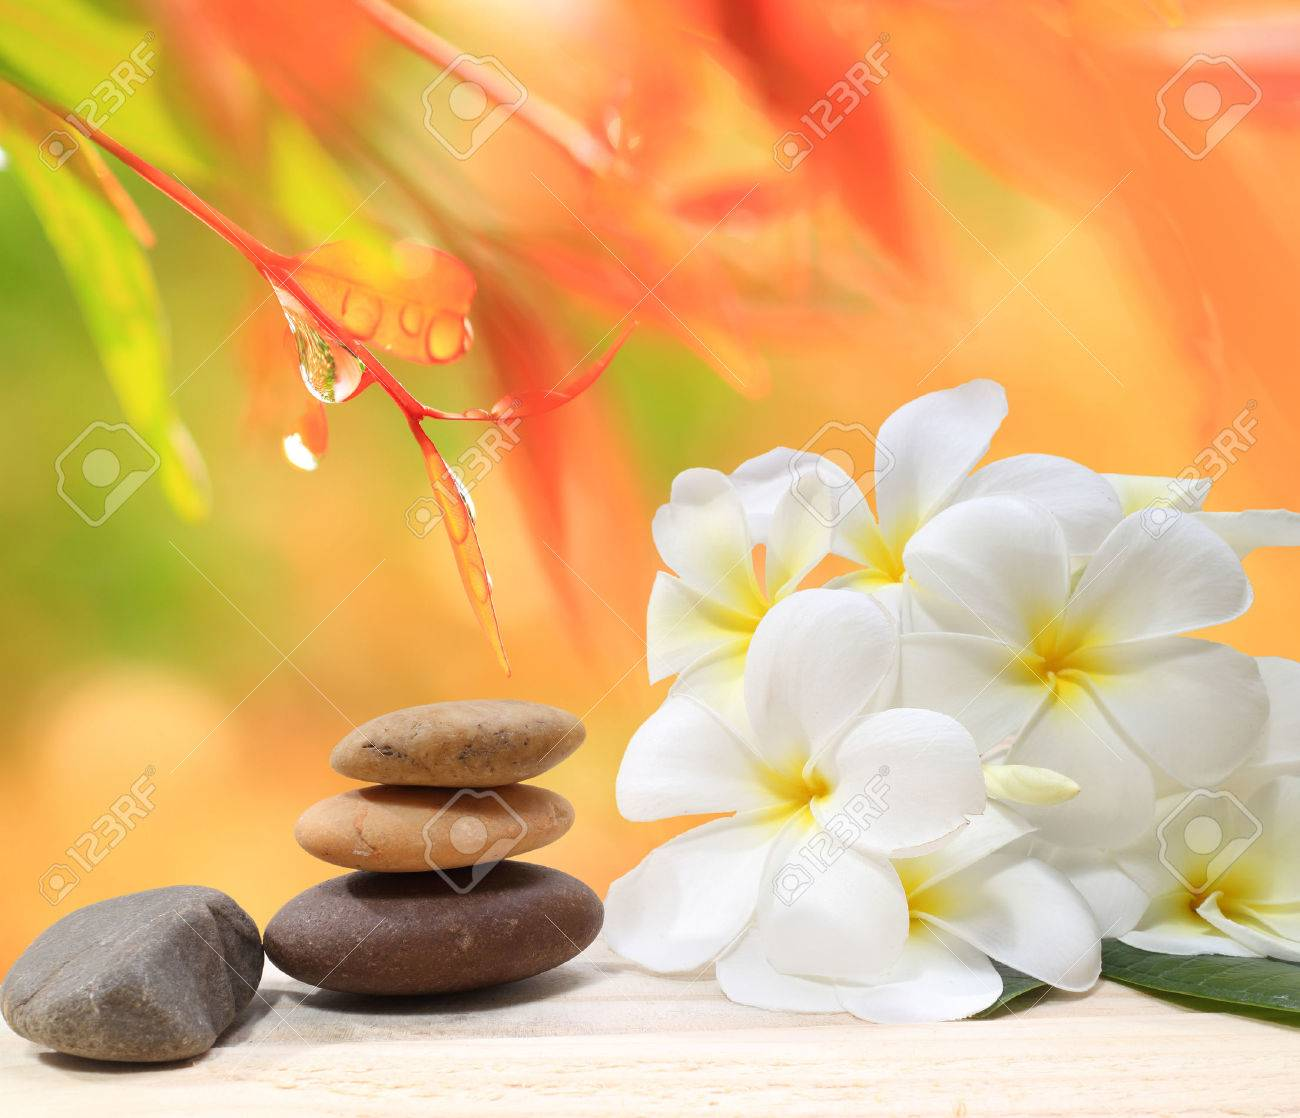 Zen spa concept background - Zen massage stones with frangipani plumeria flower and Water drops on the nature background - 48959385